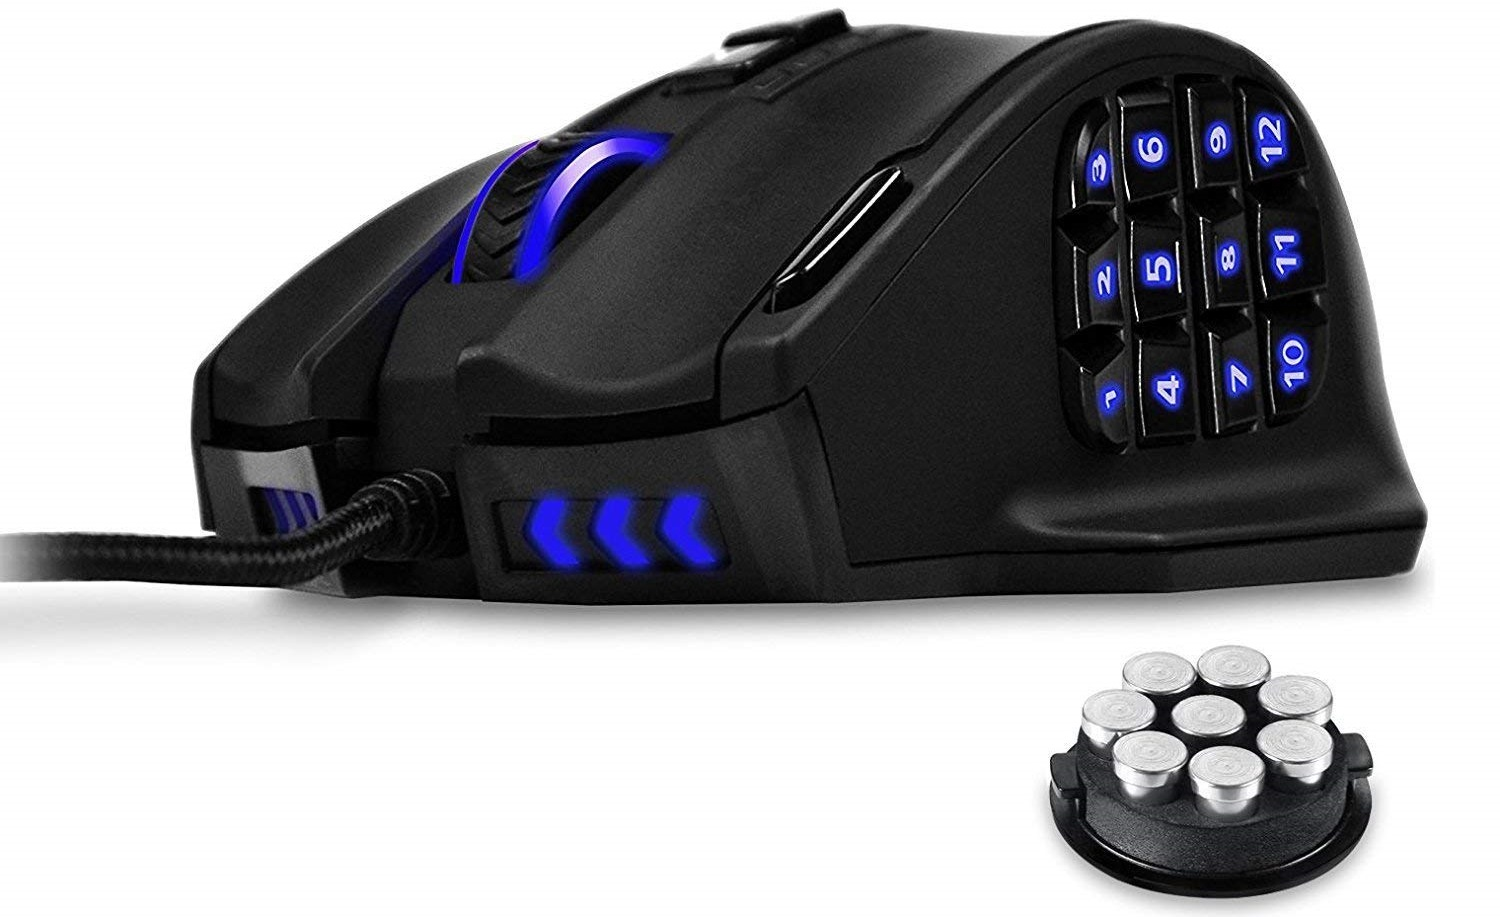 gaming computer mouses